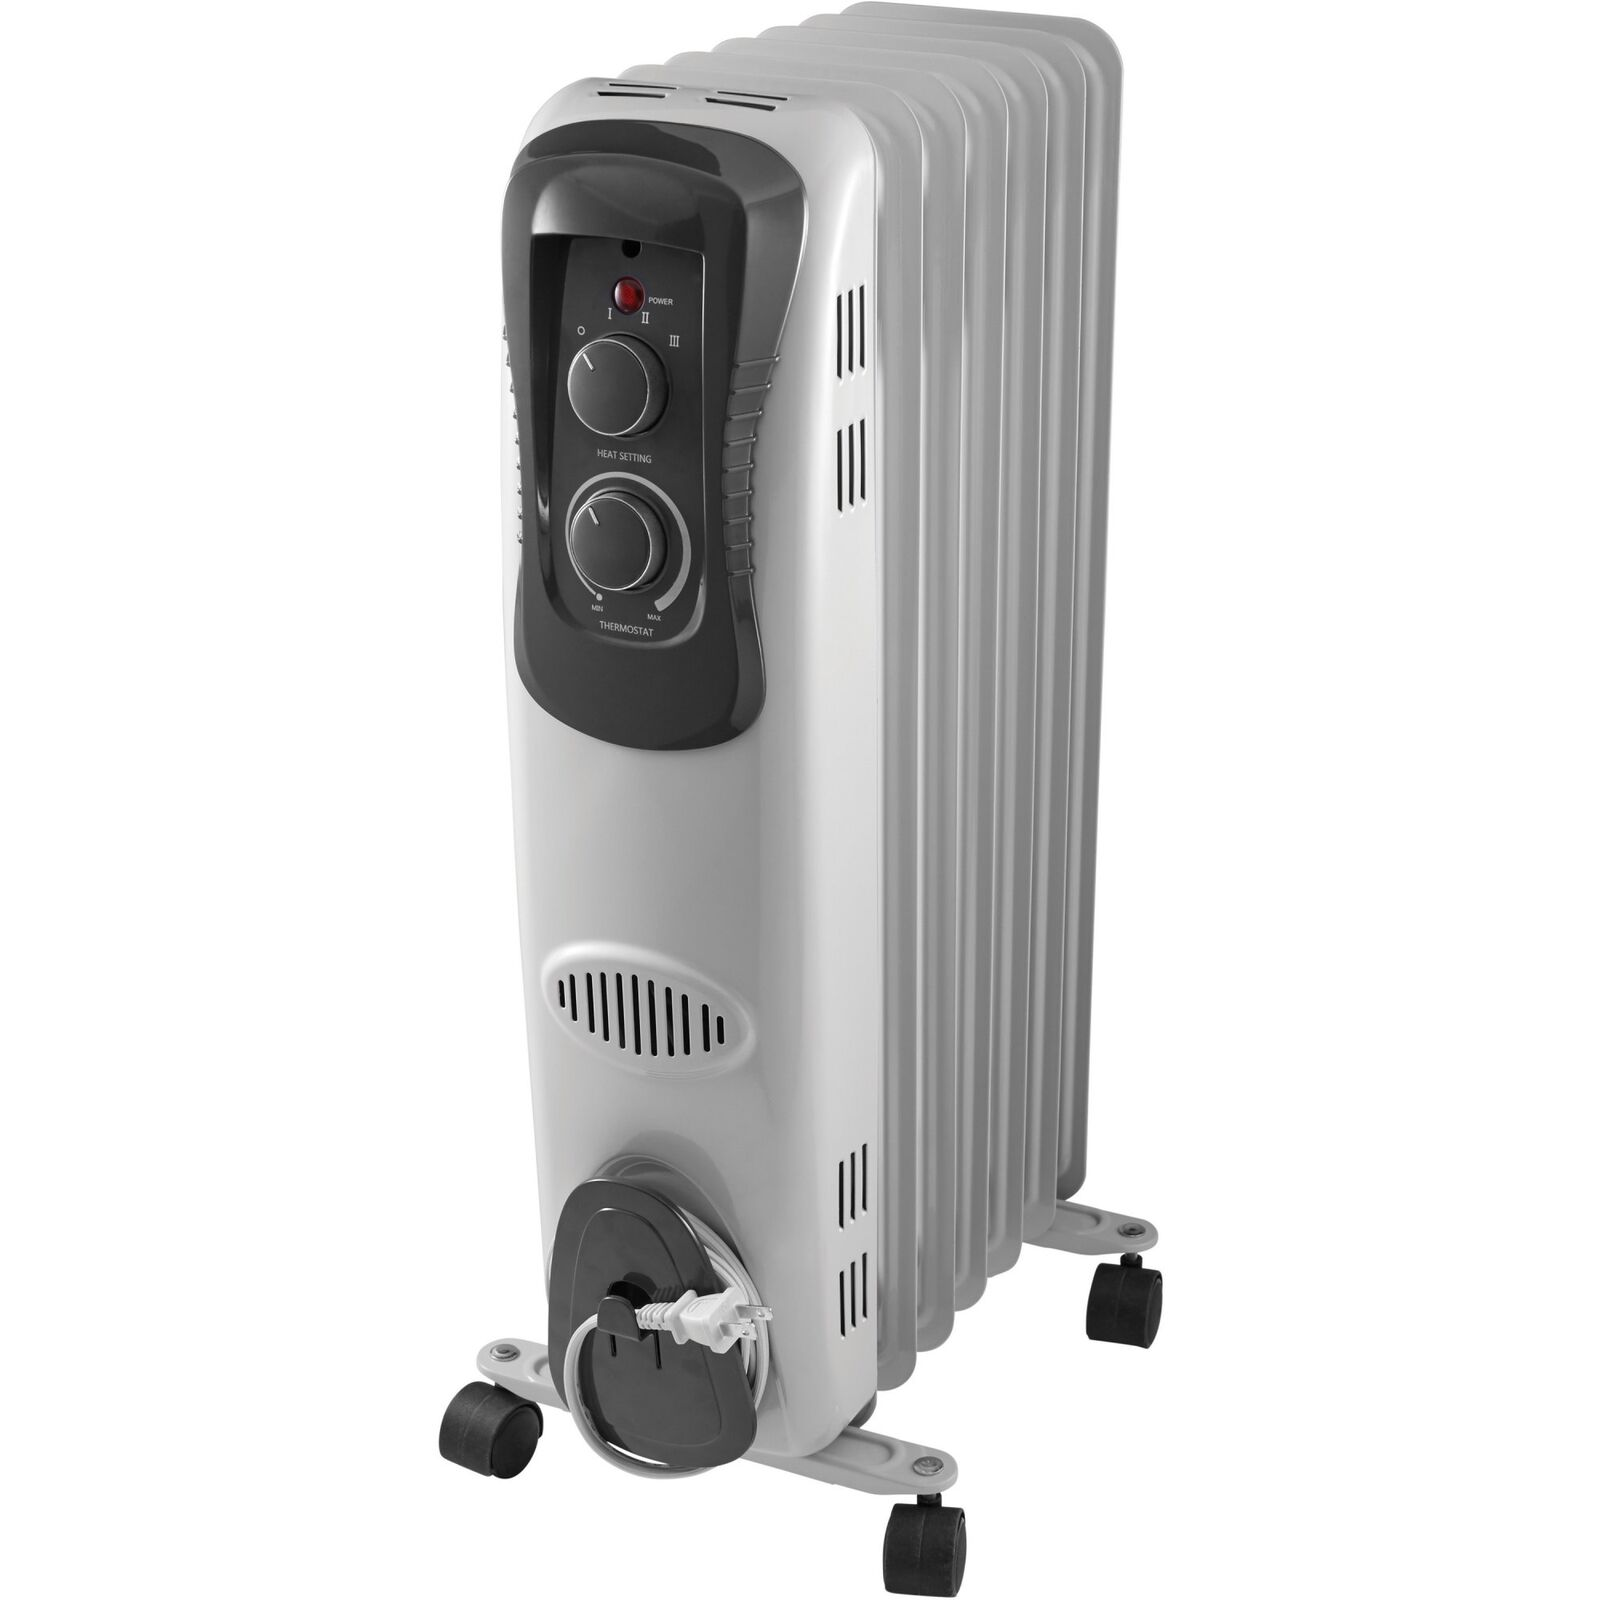 1500w Electric Oil Filled Radiant Portable Room Heater Thermostat White Radiator